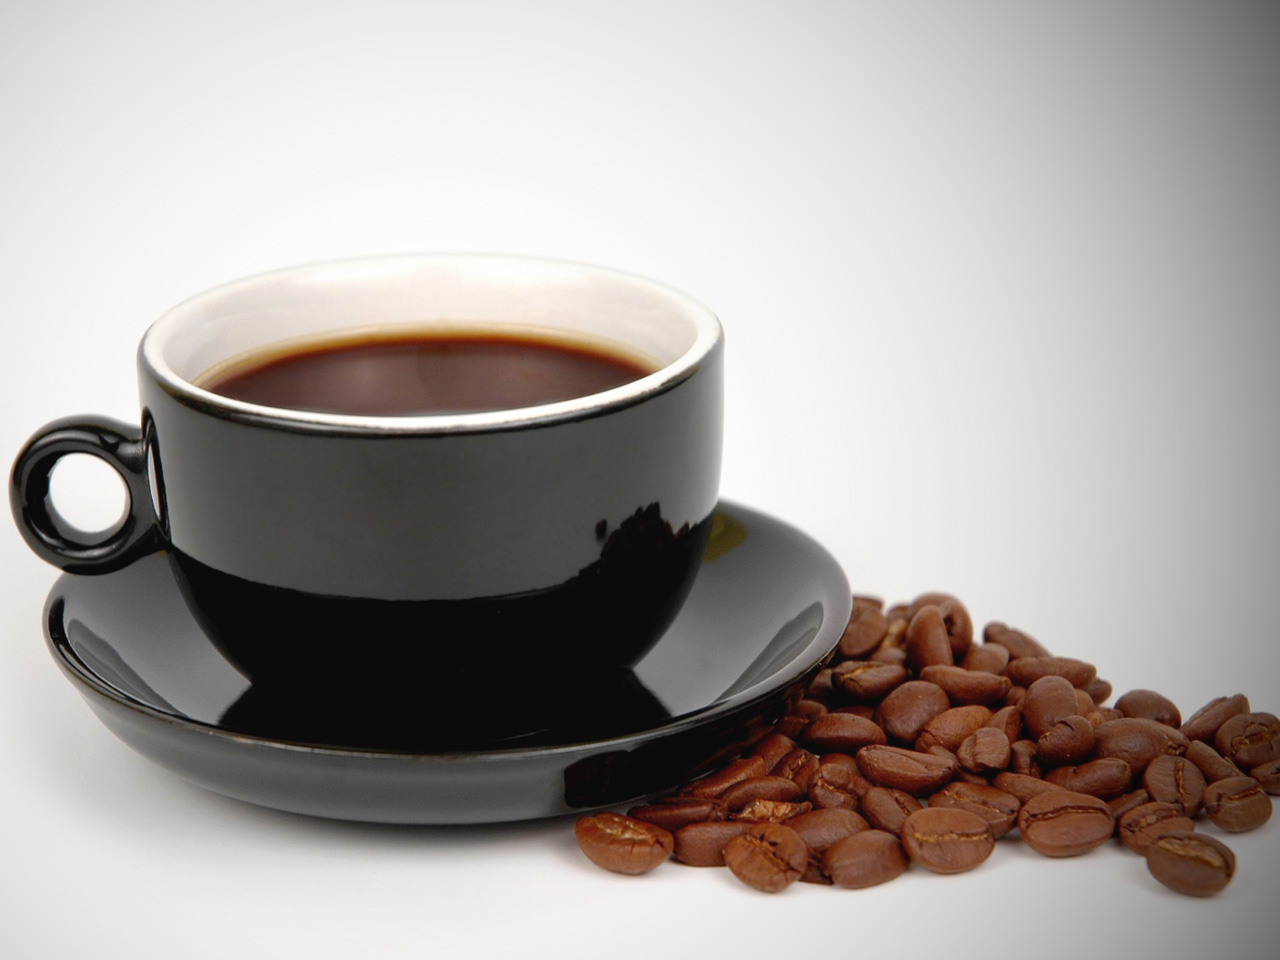 Coffee Hd Wallpapers Coffee Cup Hd Wallpapers Coffee Beans 1280x960